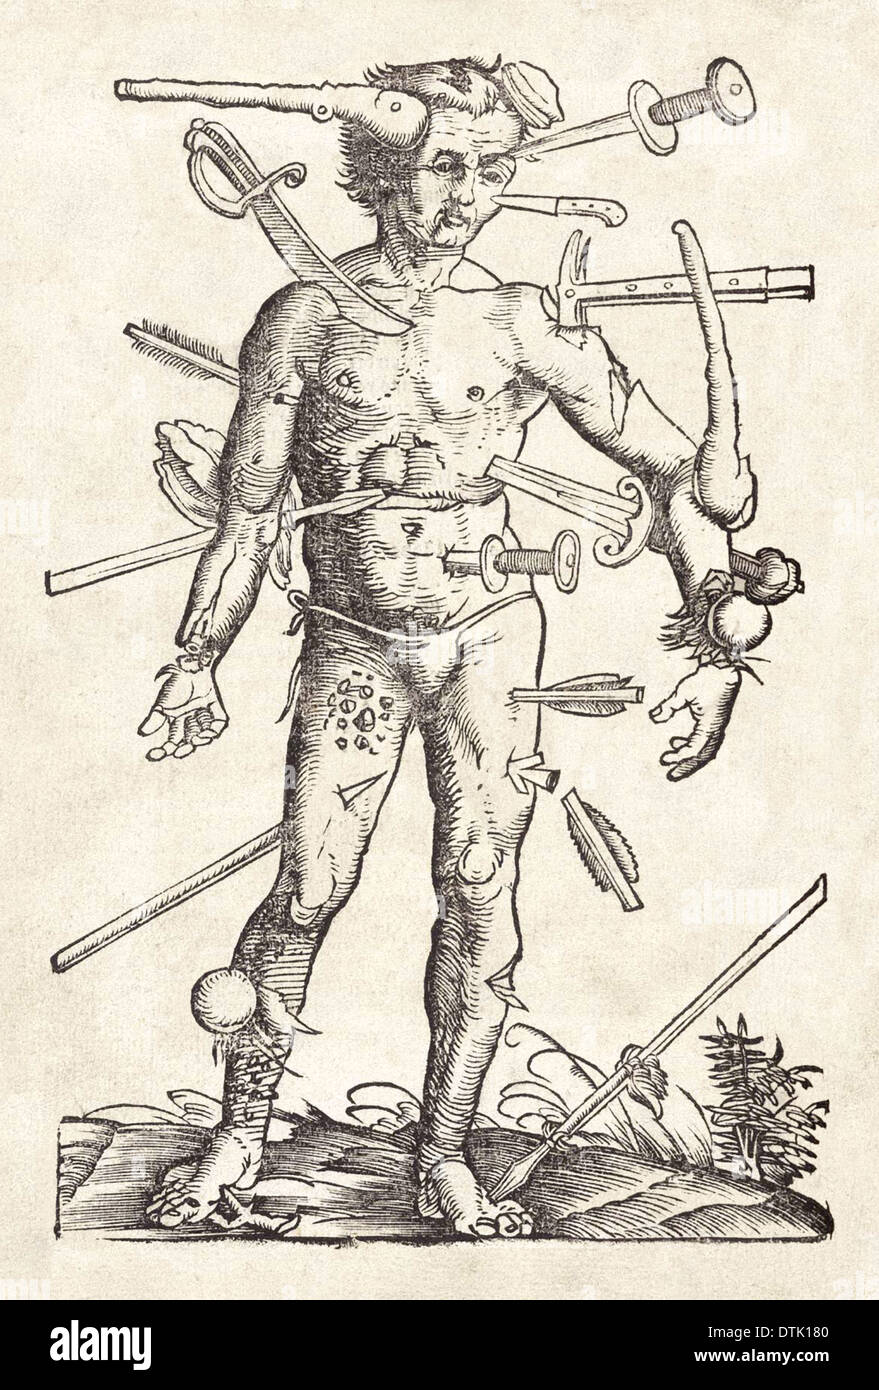 Wound Man woodcut attributed to Hans Wechtlin from German surgeon Hans von Gersdorff's Field book of surgery published in 1517. - Stock Image